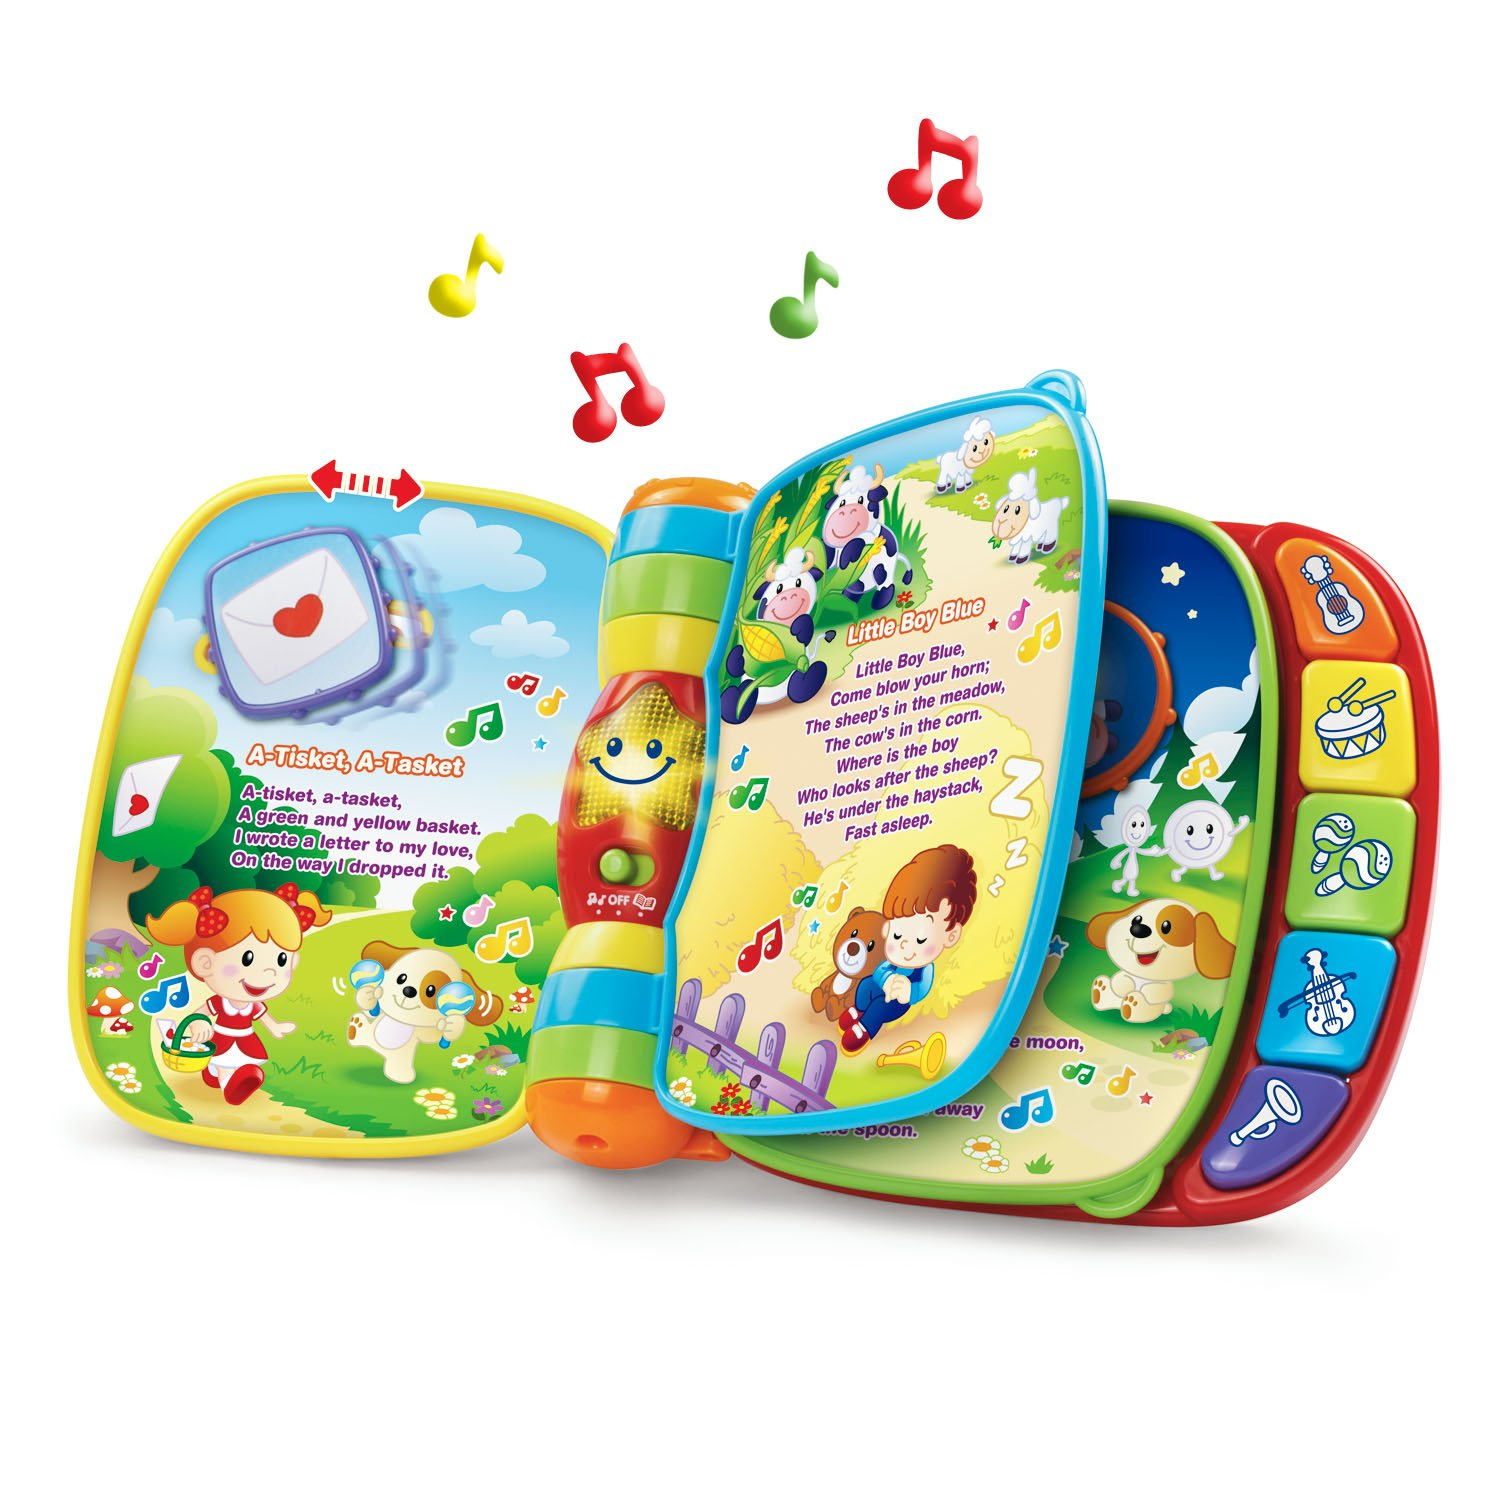 Amazon VTech Musical Rhymes Book Emballage sans frustration